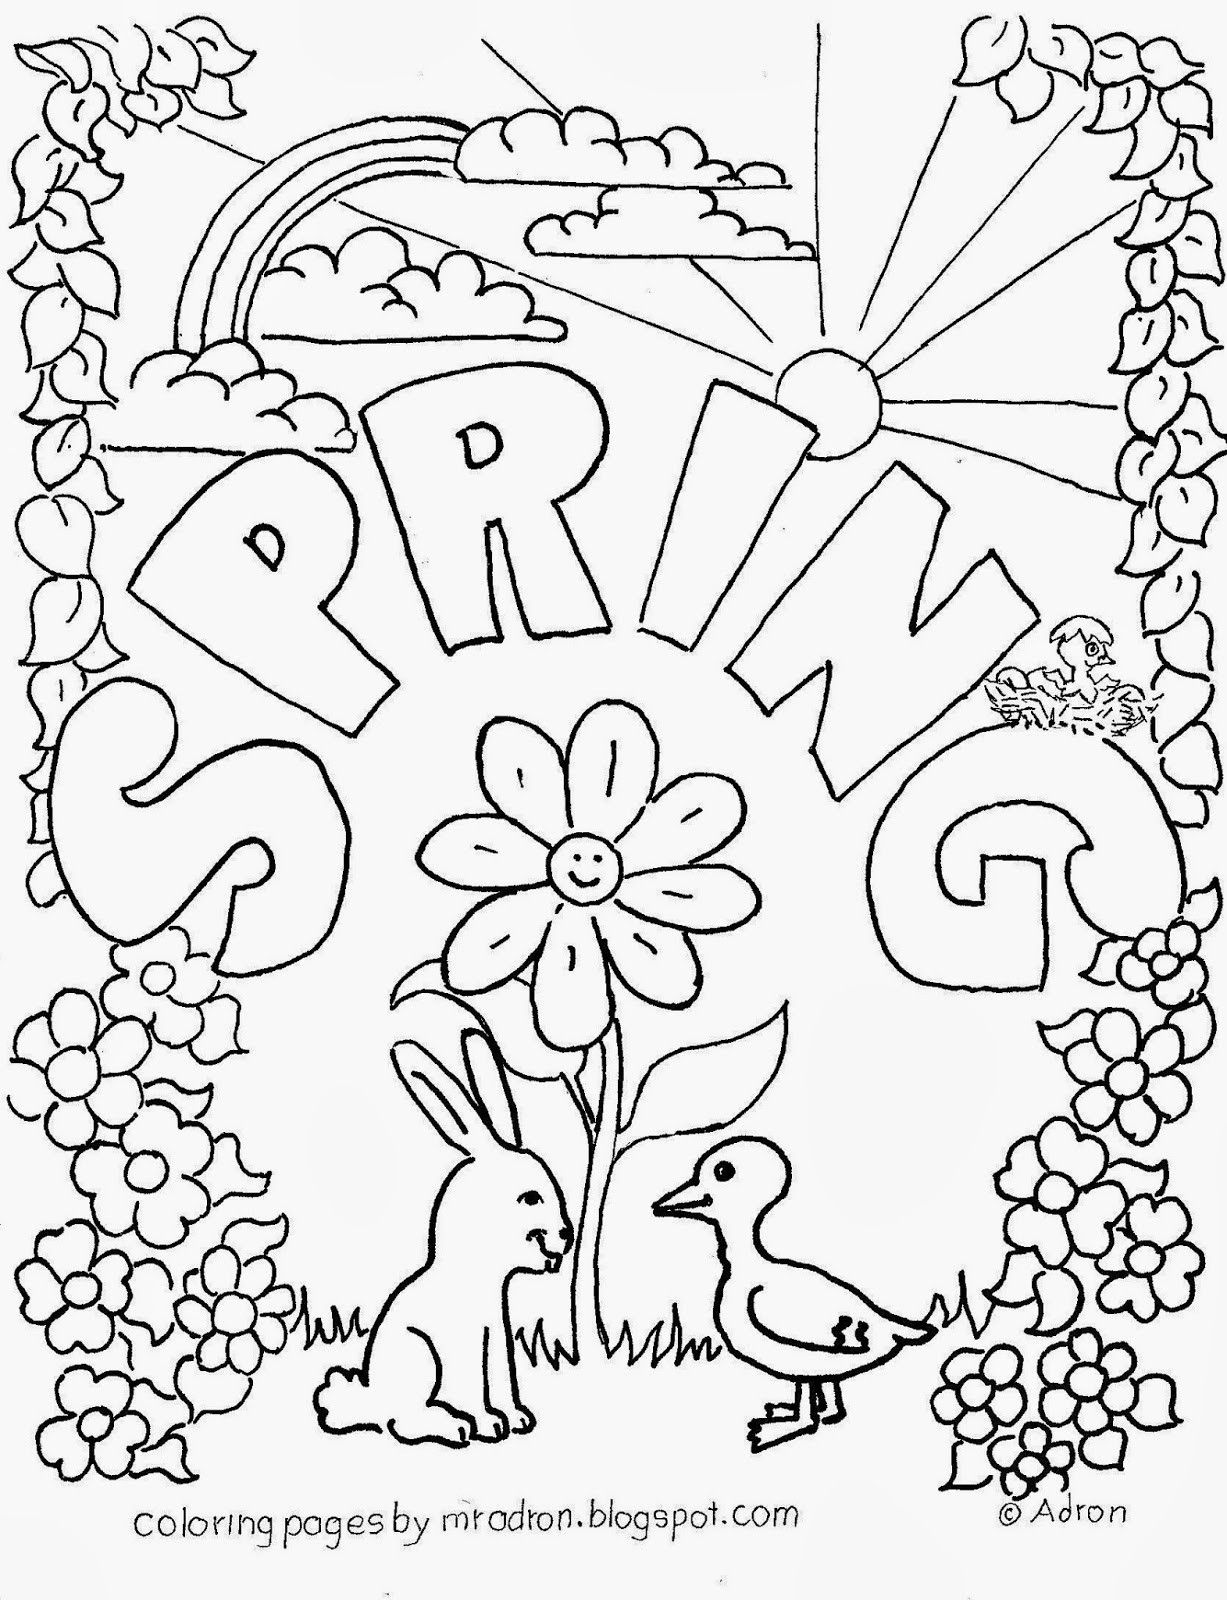 1227x1600 Happy Groundhog Day Coloring Pages For Kids Elegant First Day